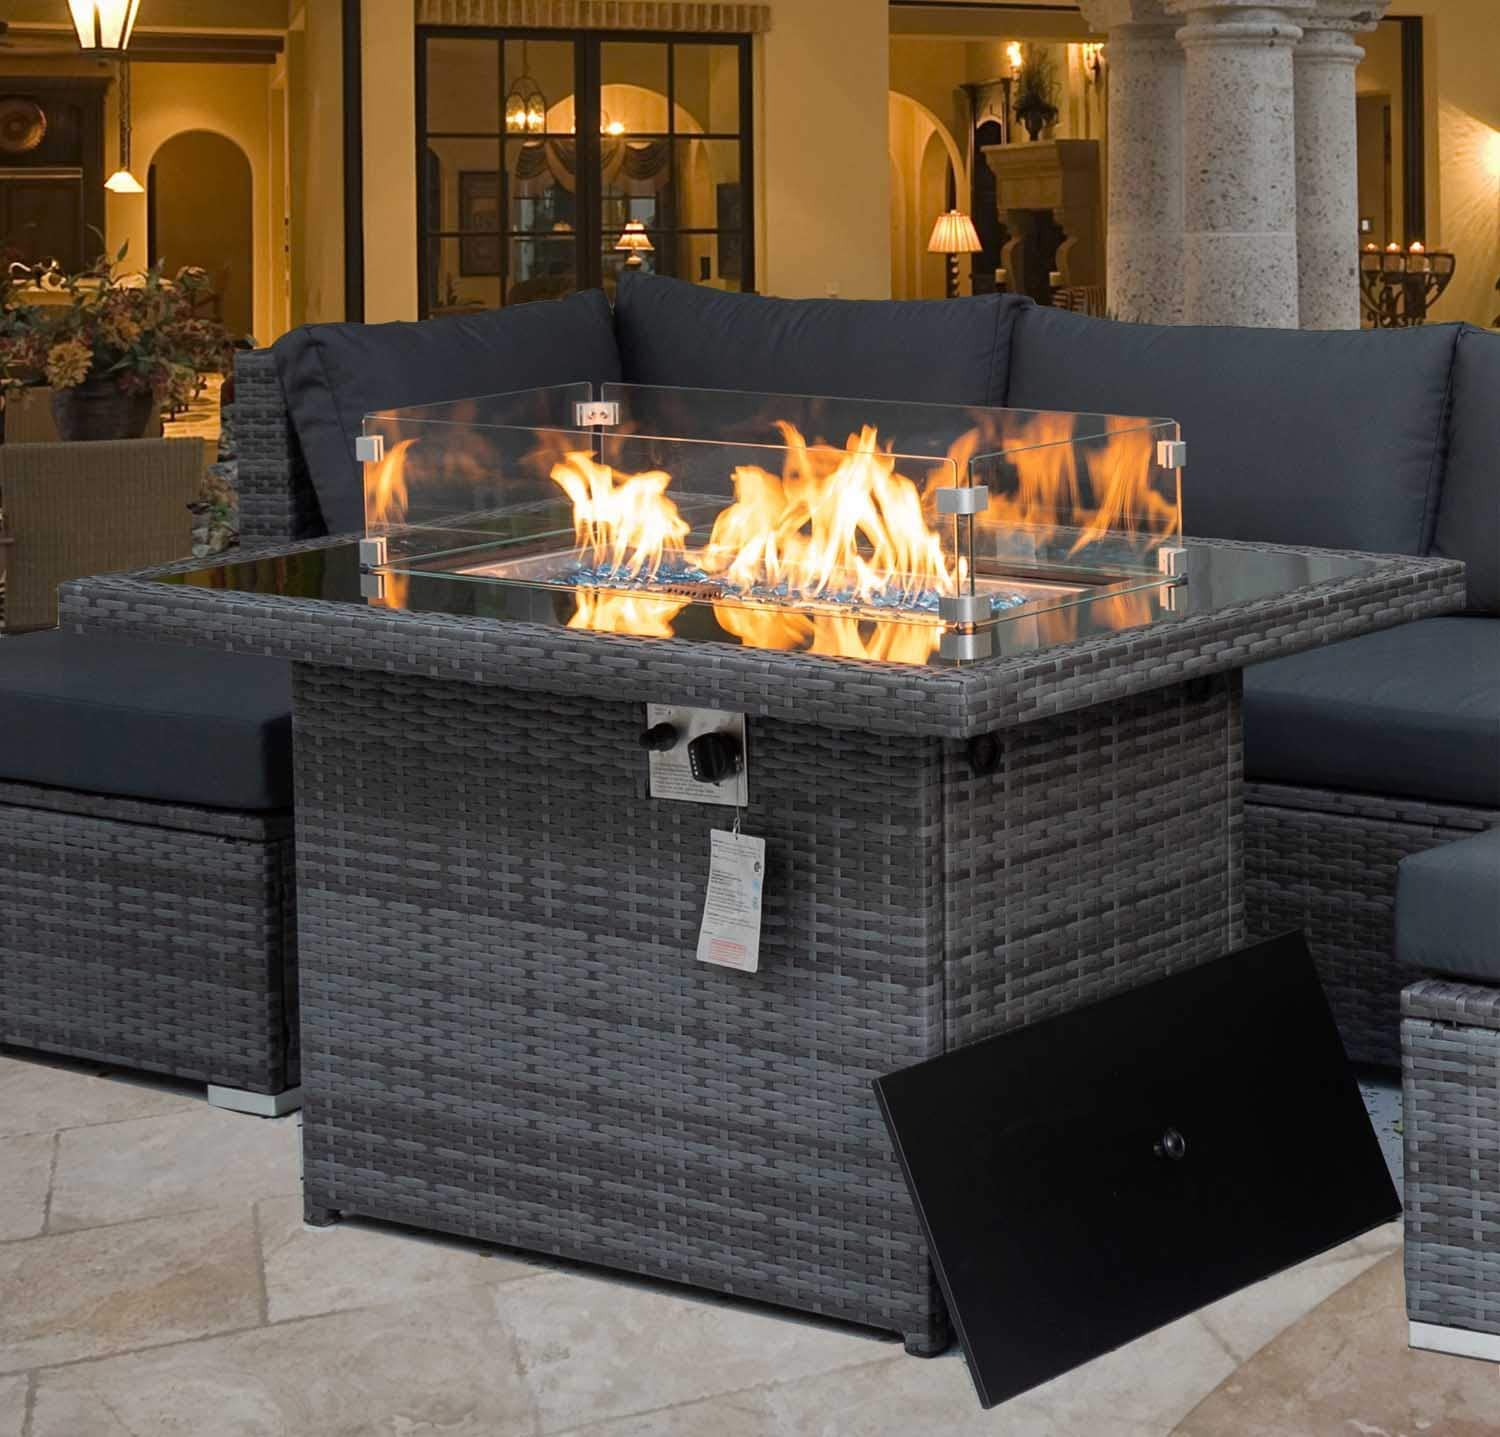 nicesoul 43 outdoor patio propane fire pit table gray pe wicker 55 000 btu auto ignition doube pipes firepits 8mm tempered glass tabletop blue